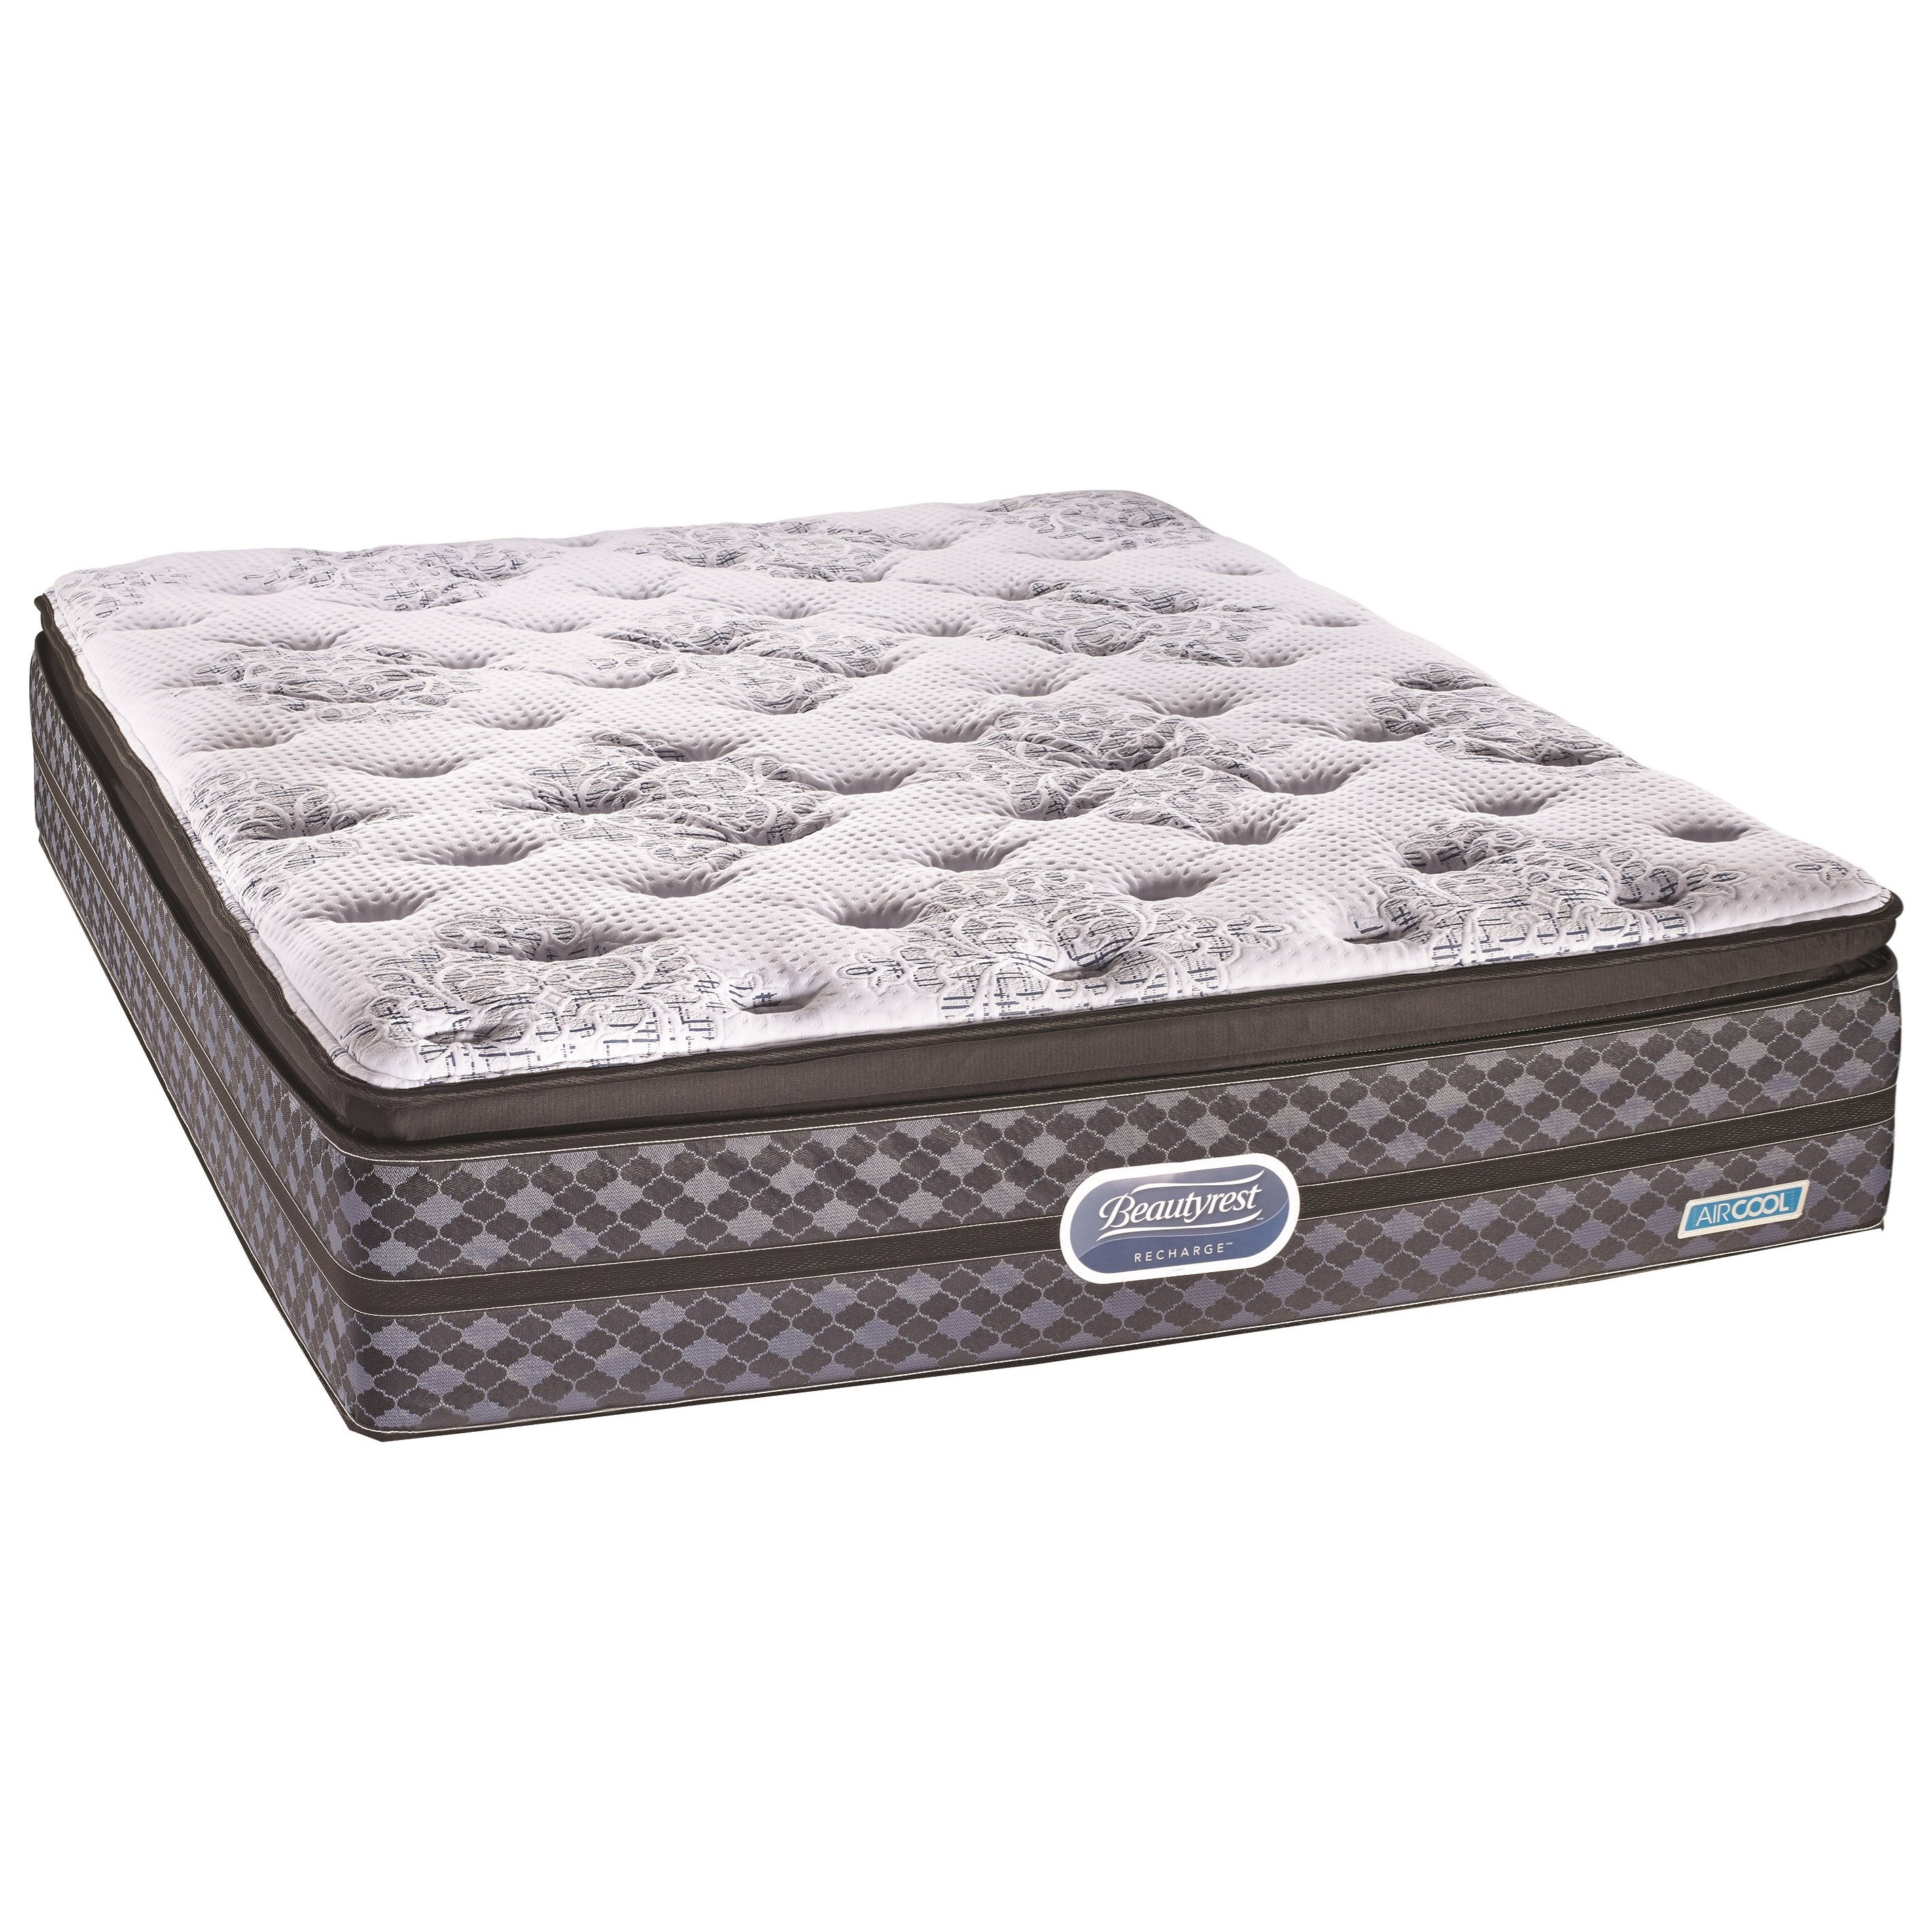 Full Hi-Loft Firm Coil Mattress